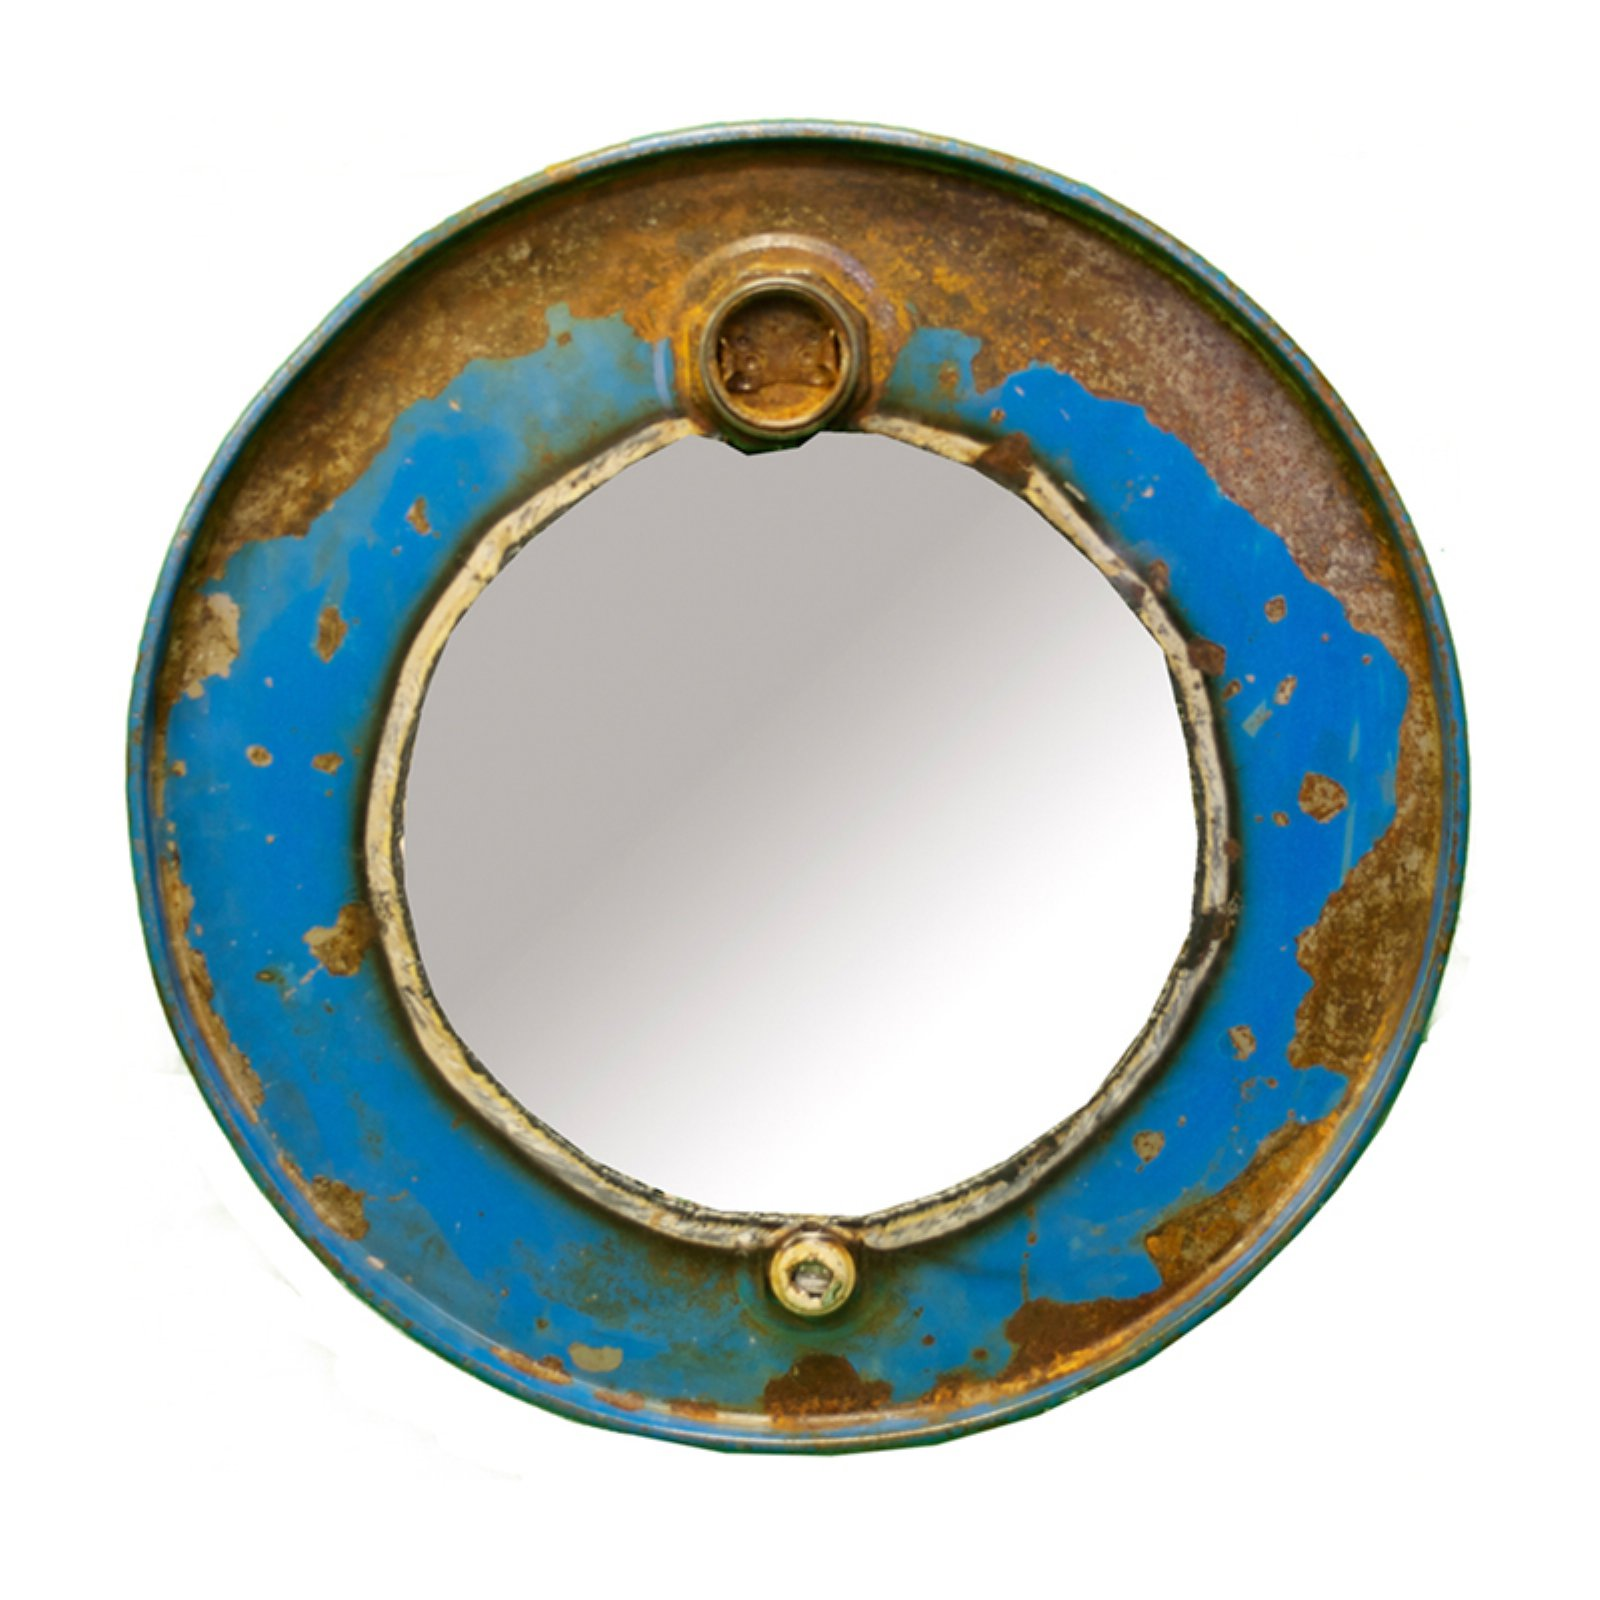 Cobalt Steam Punk Barrel Wall Mirror - 23W x 23H in.